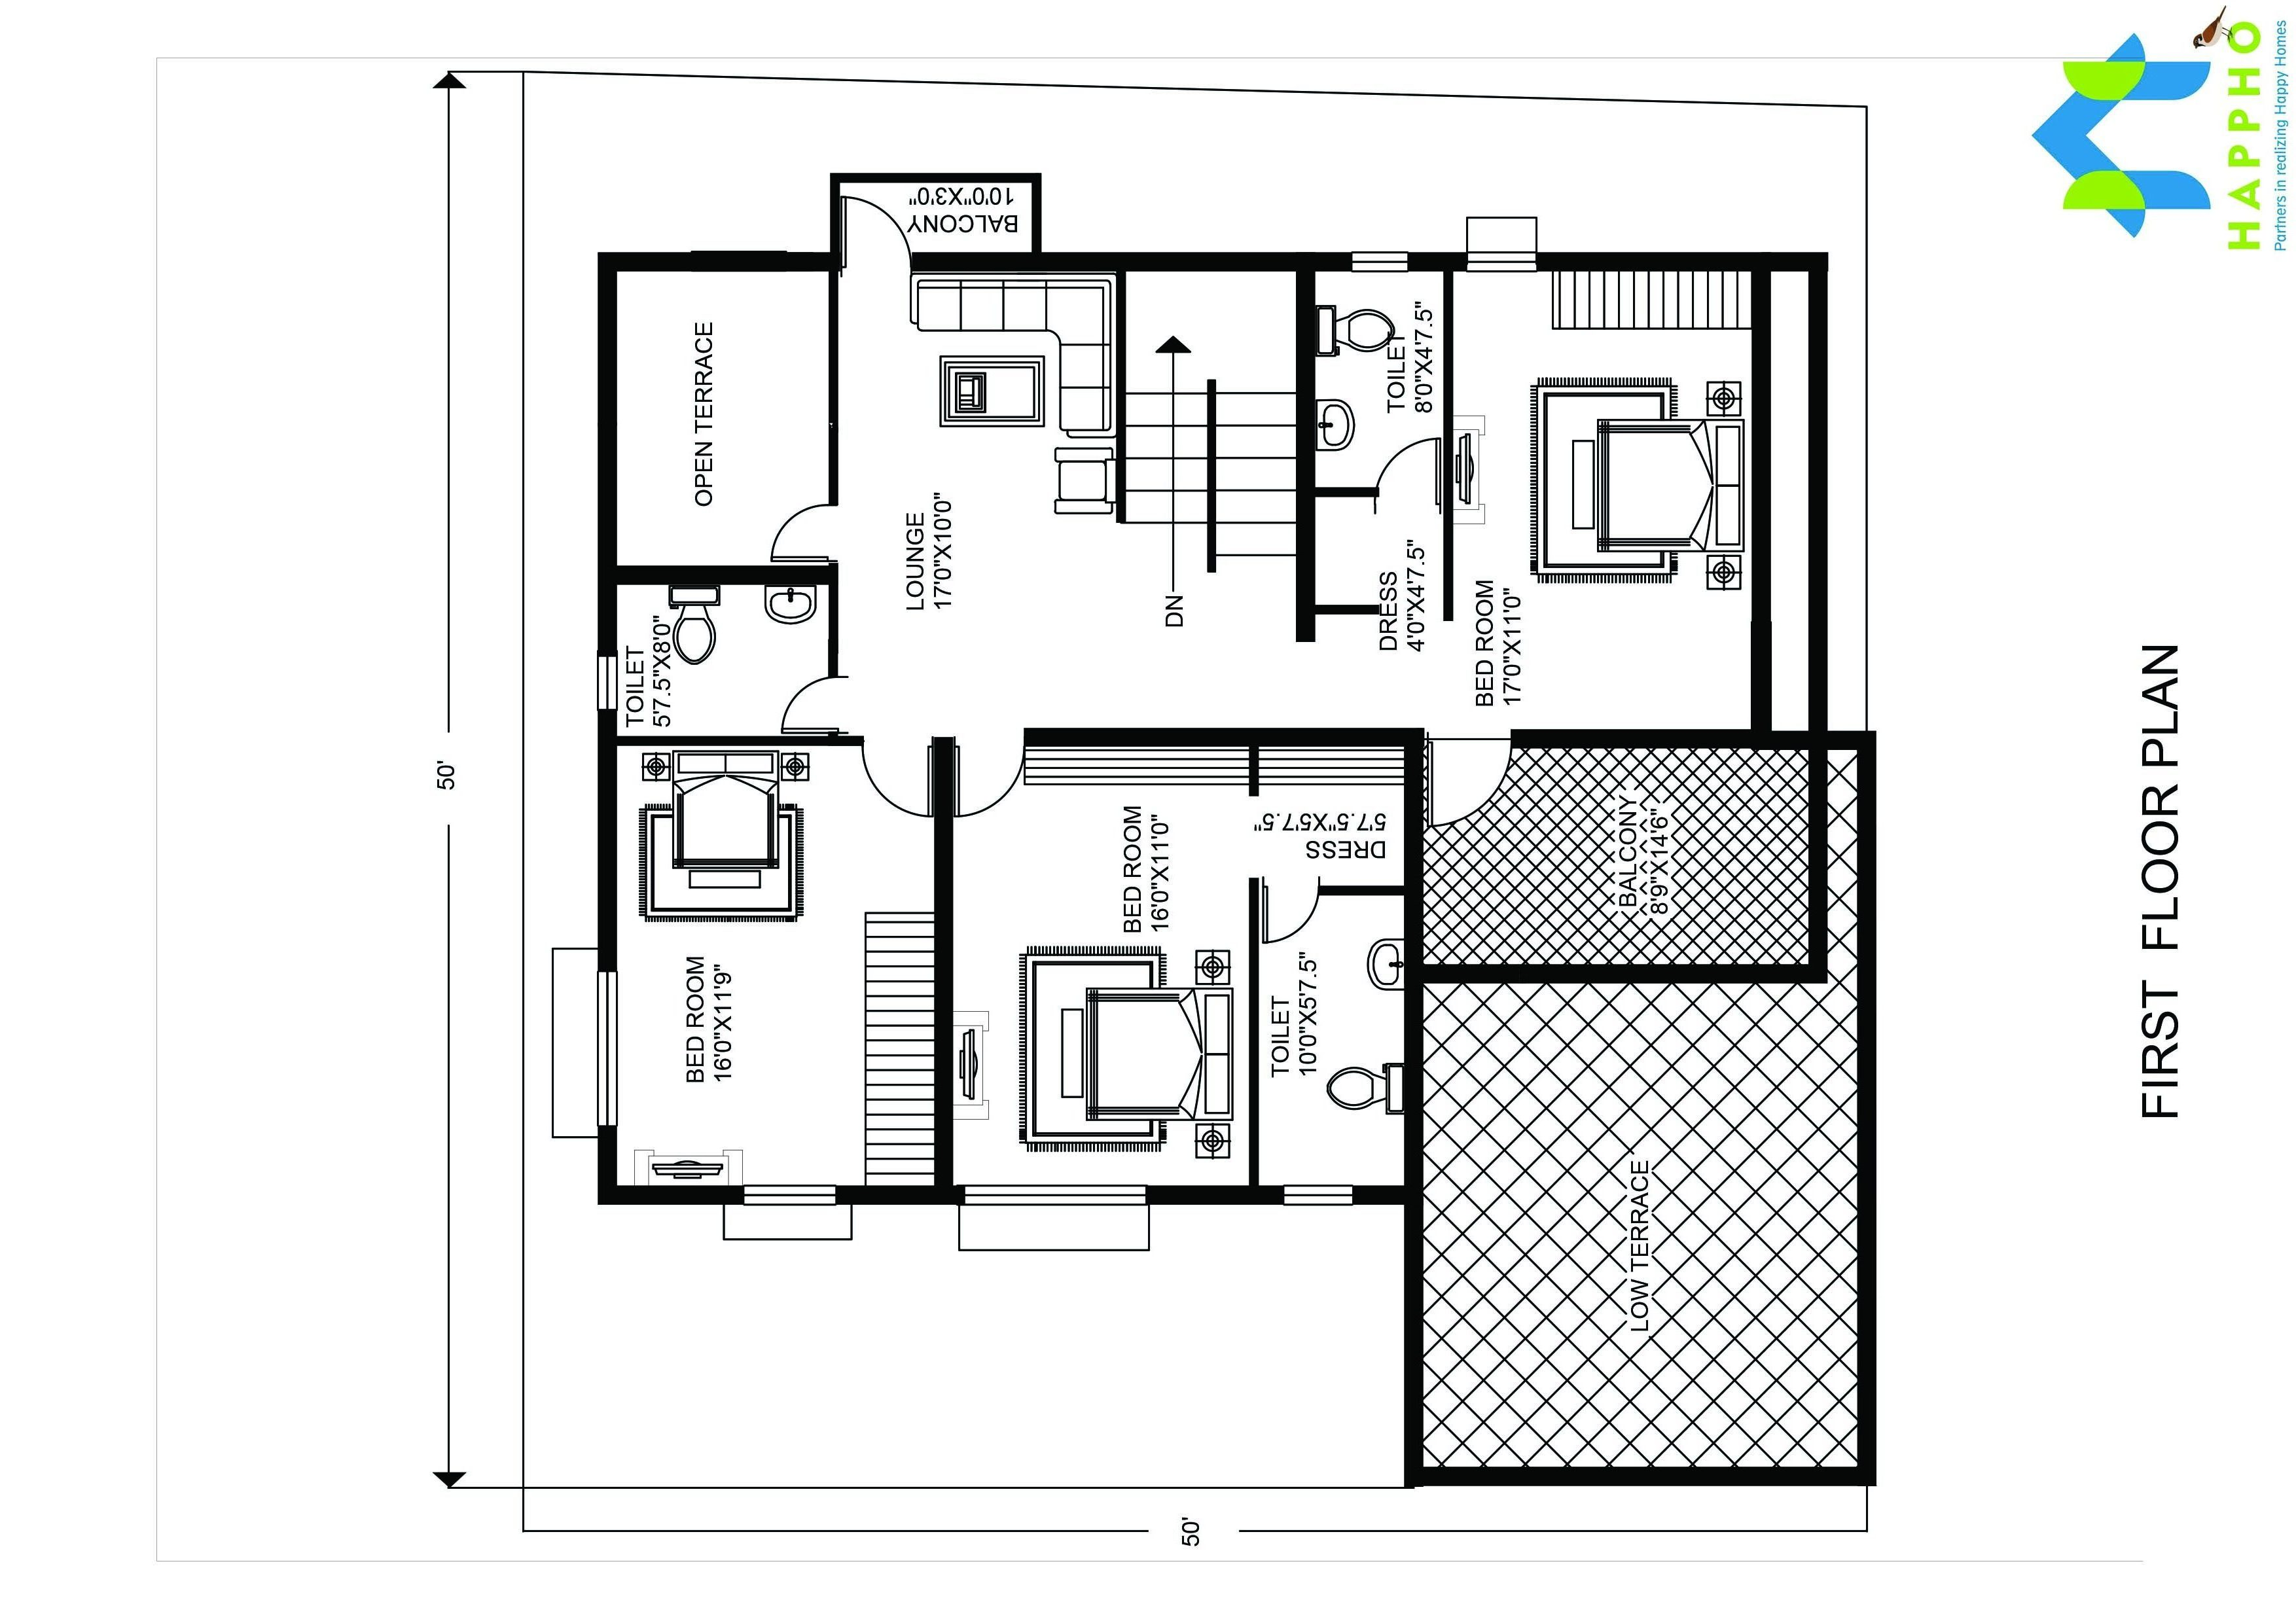 5 bhk floor plan for 25 x 25 feet plot 2500 square feet for 2500 sq ft apartment plans